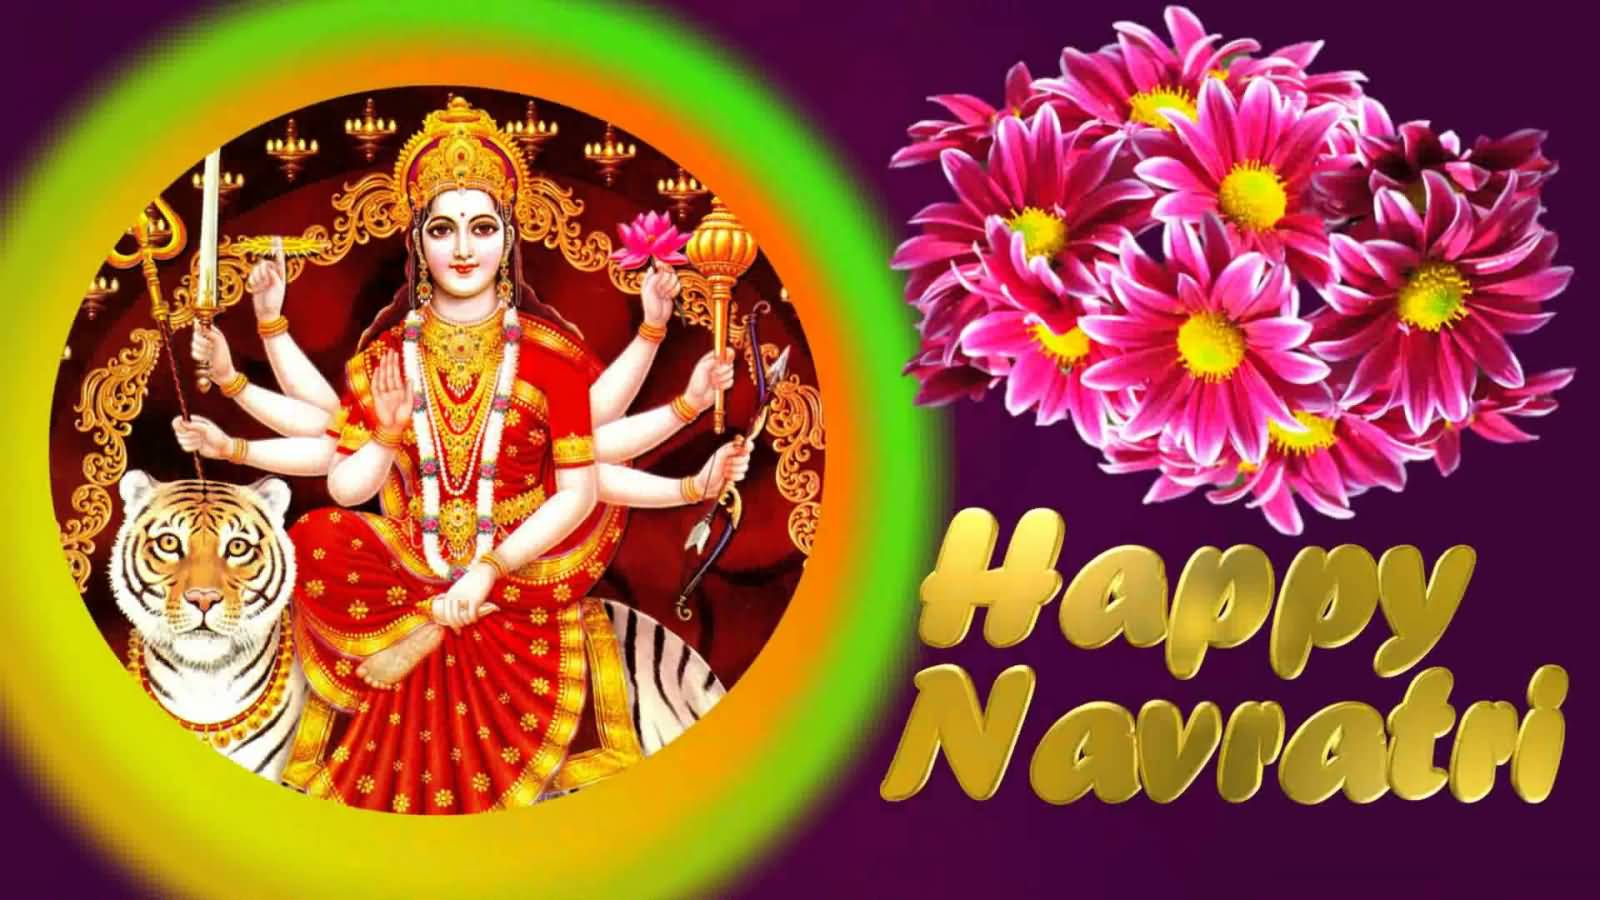 Happy navratri wishes with flower kristyandbryce Choice Image